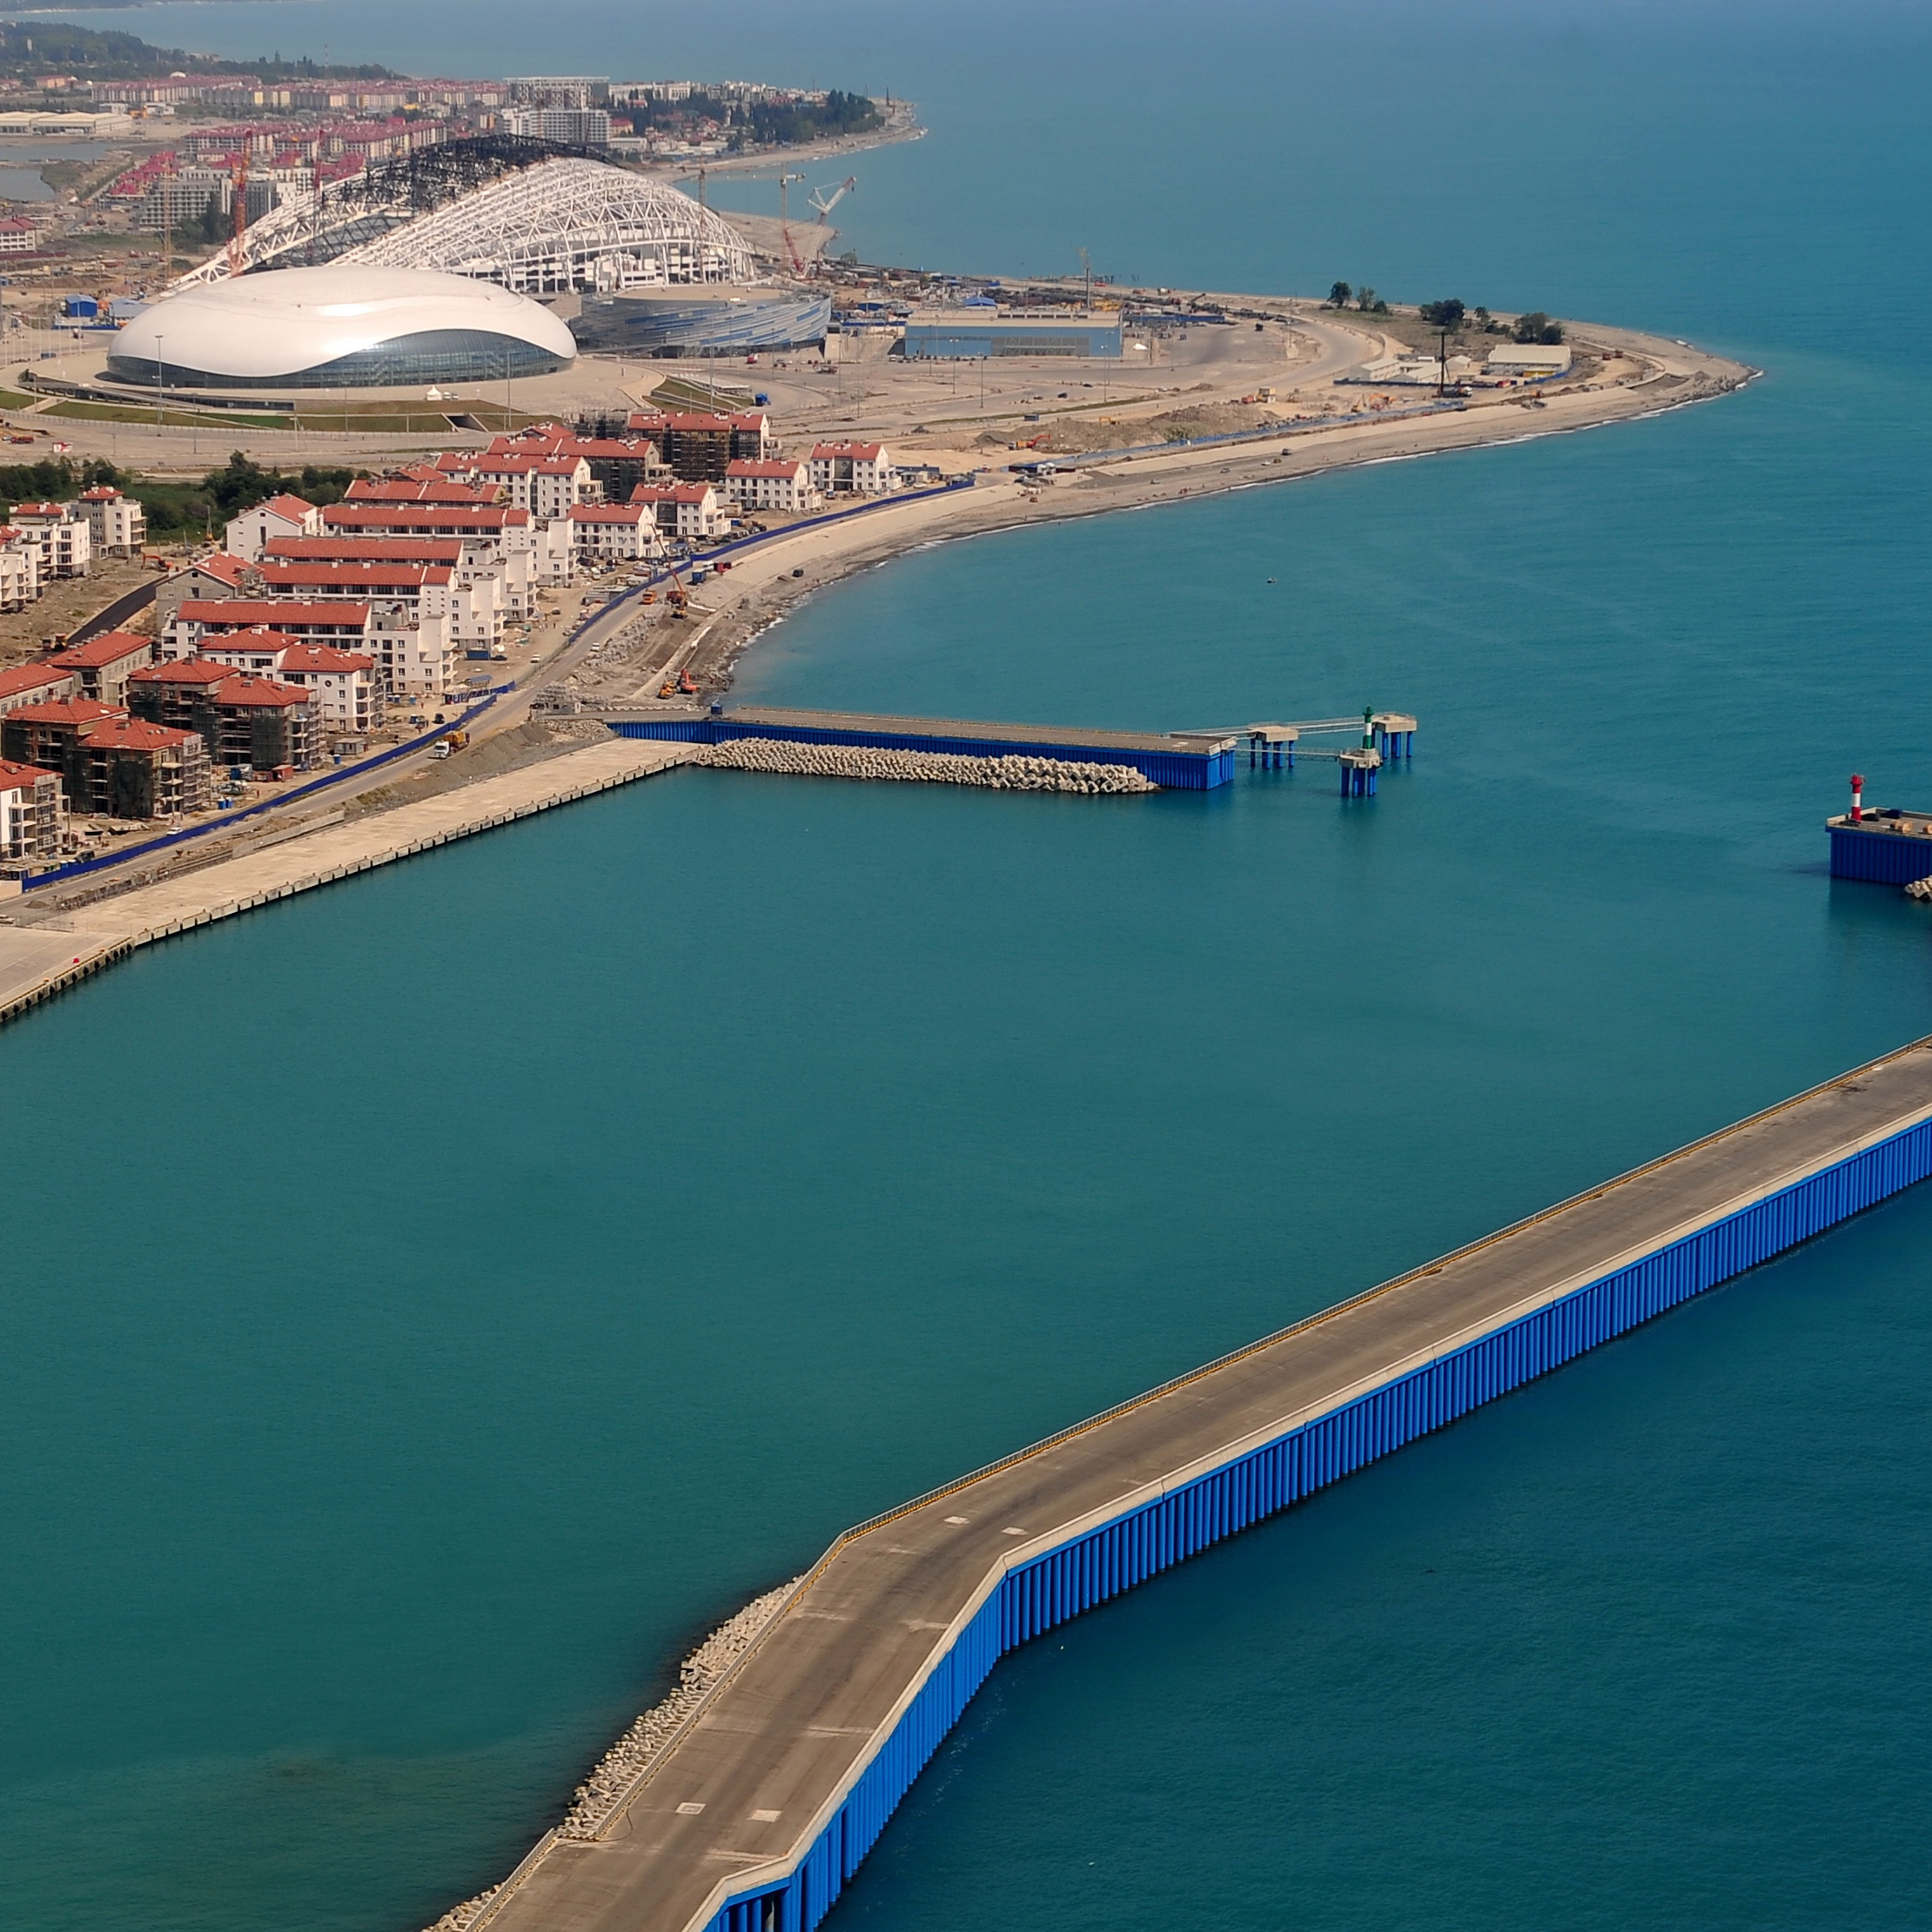 An aerial view of the construction site of Sochi's Olympic Park on the shore of the Black Sea.